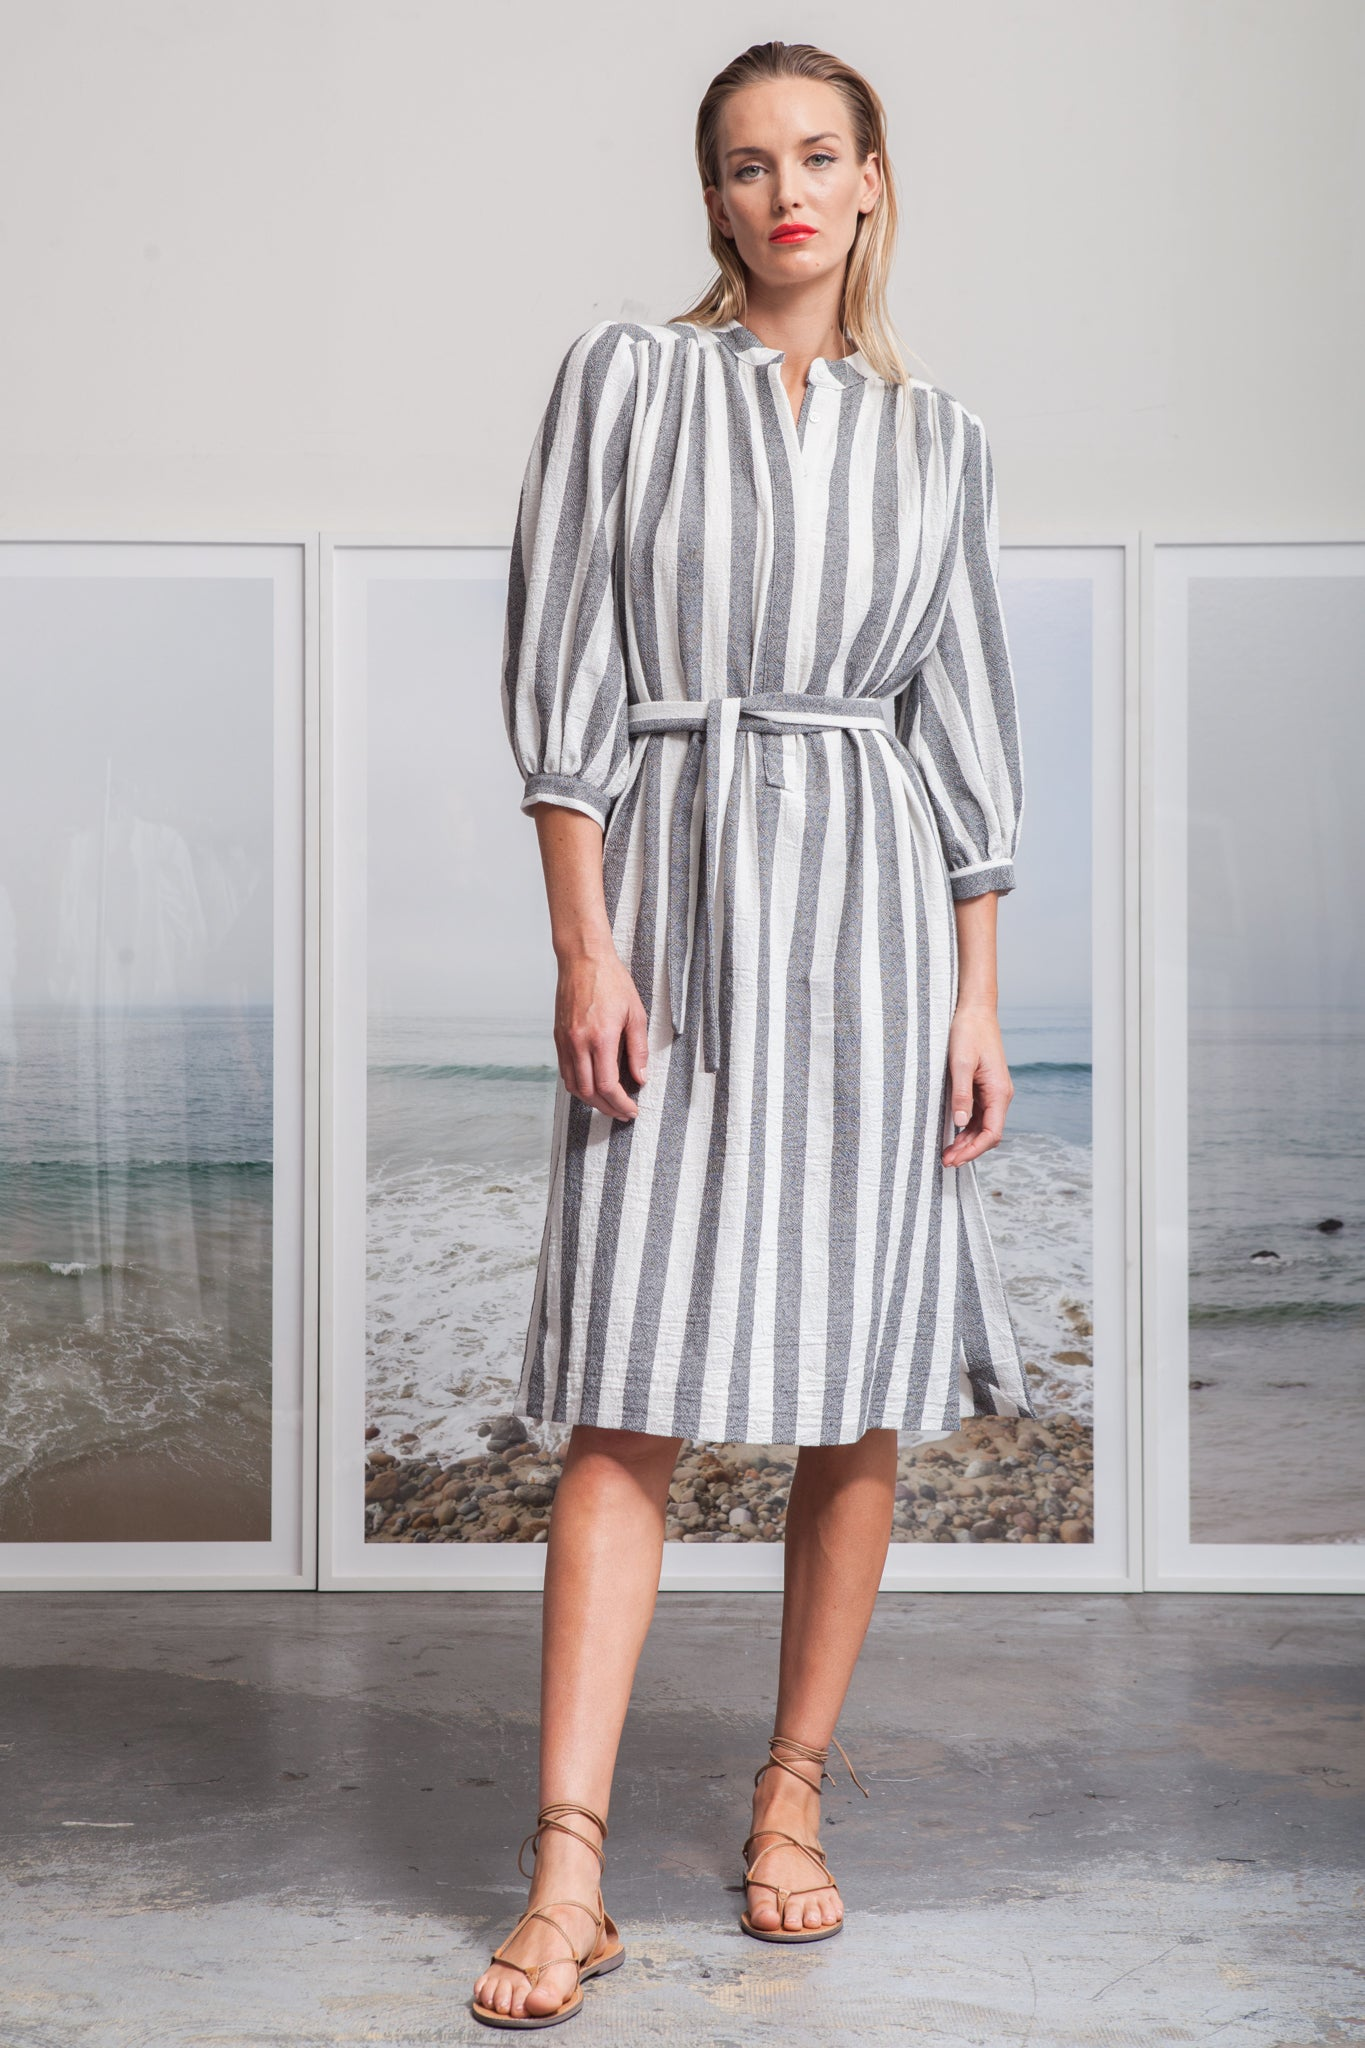 Model wears size Small MARISH DRESS - STRIPE by Heidi Merrick made in Downtown Los Angeles